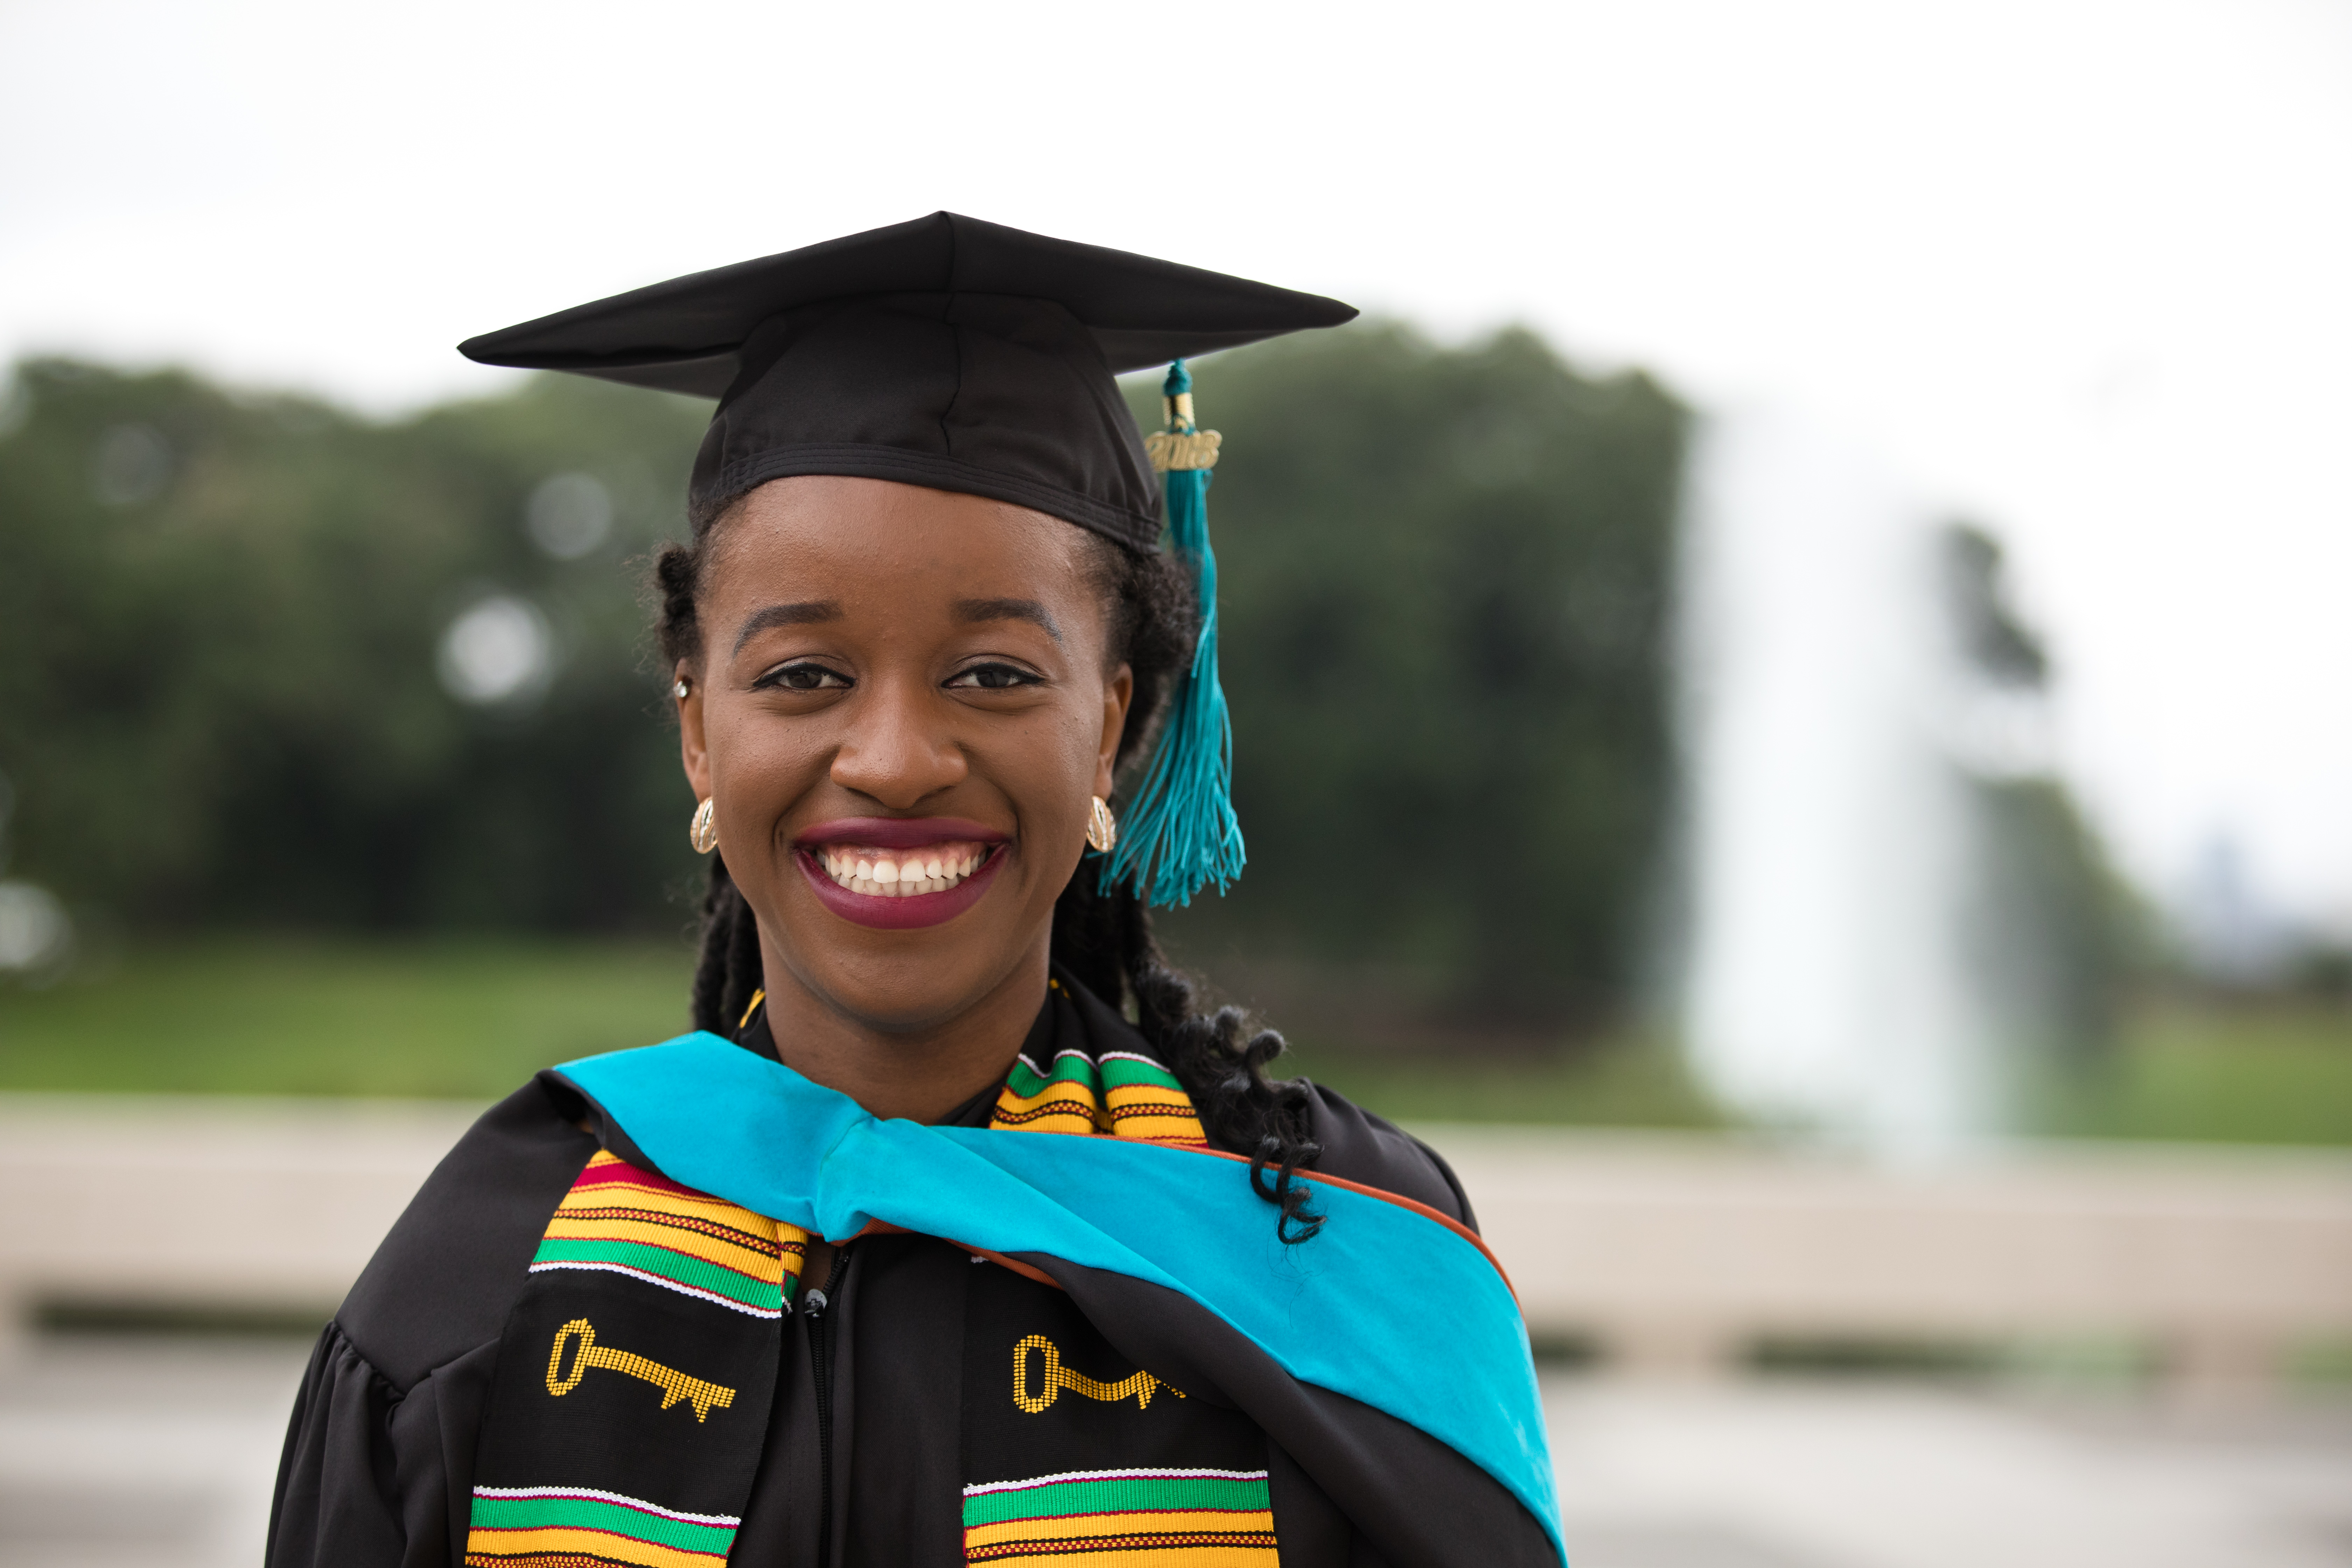 LBJ student Amara Uyanna (MGPS '18) on commencement day